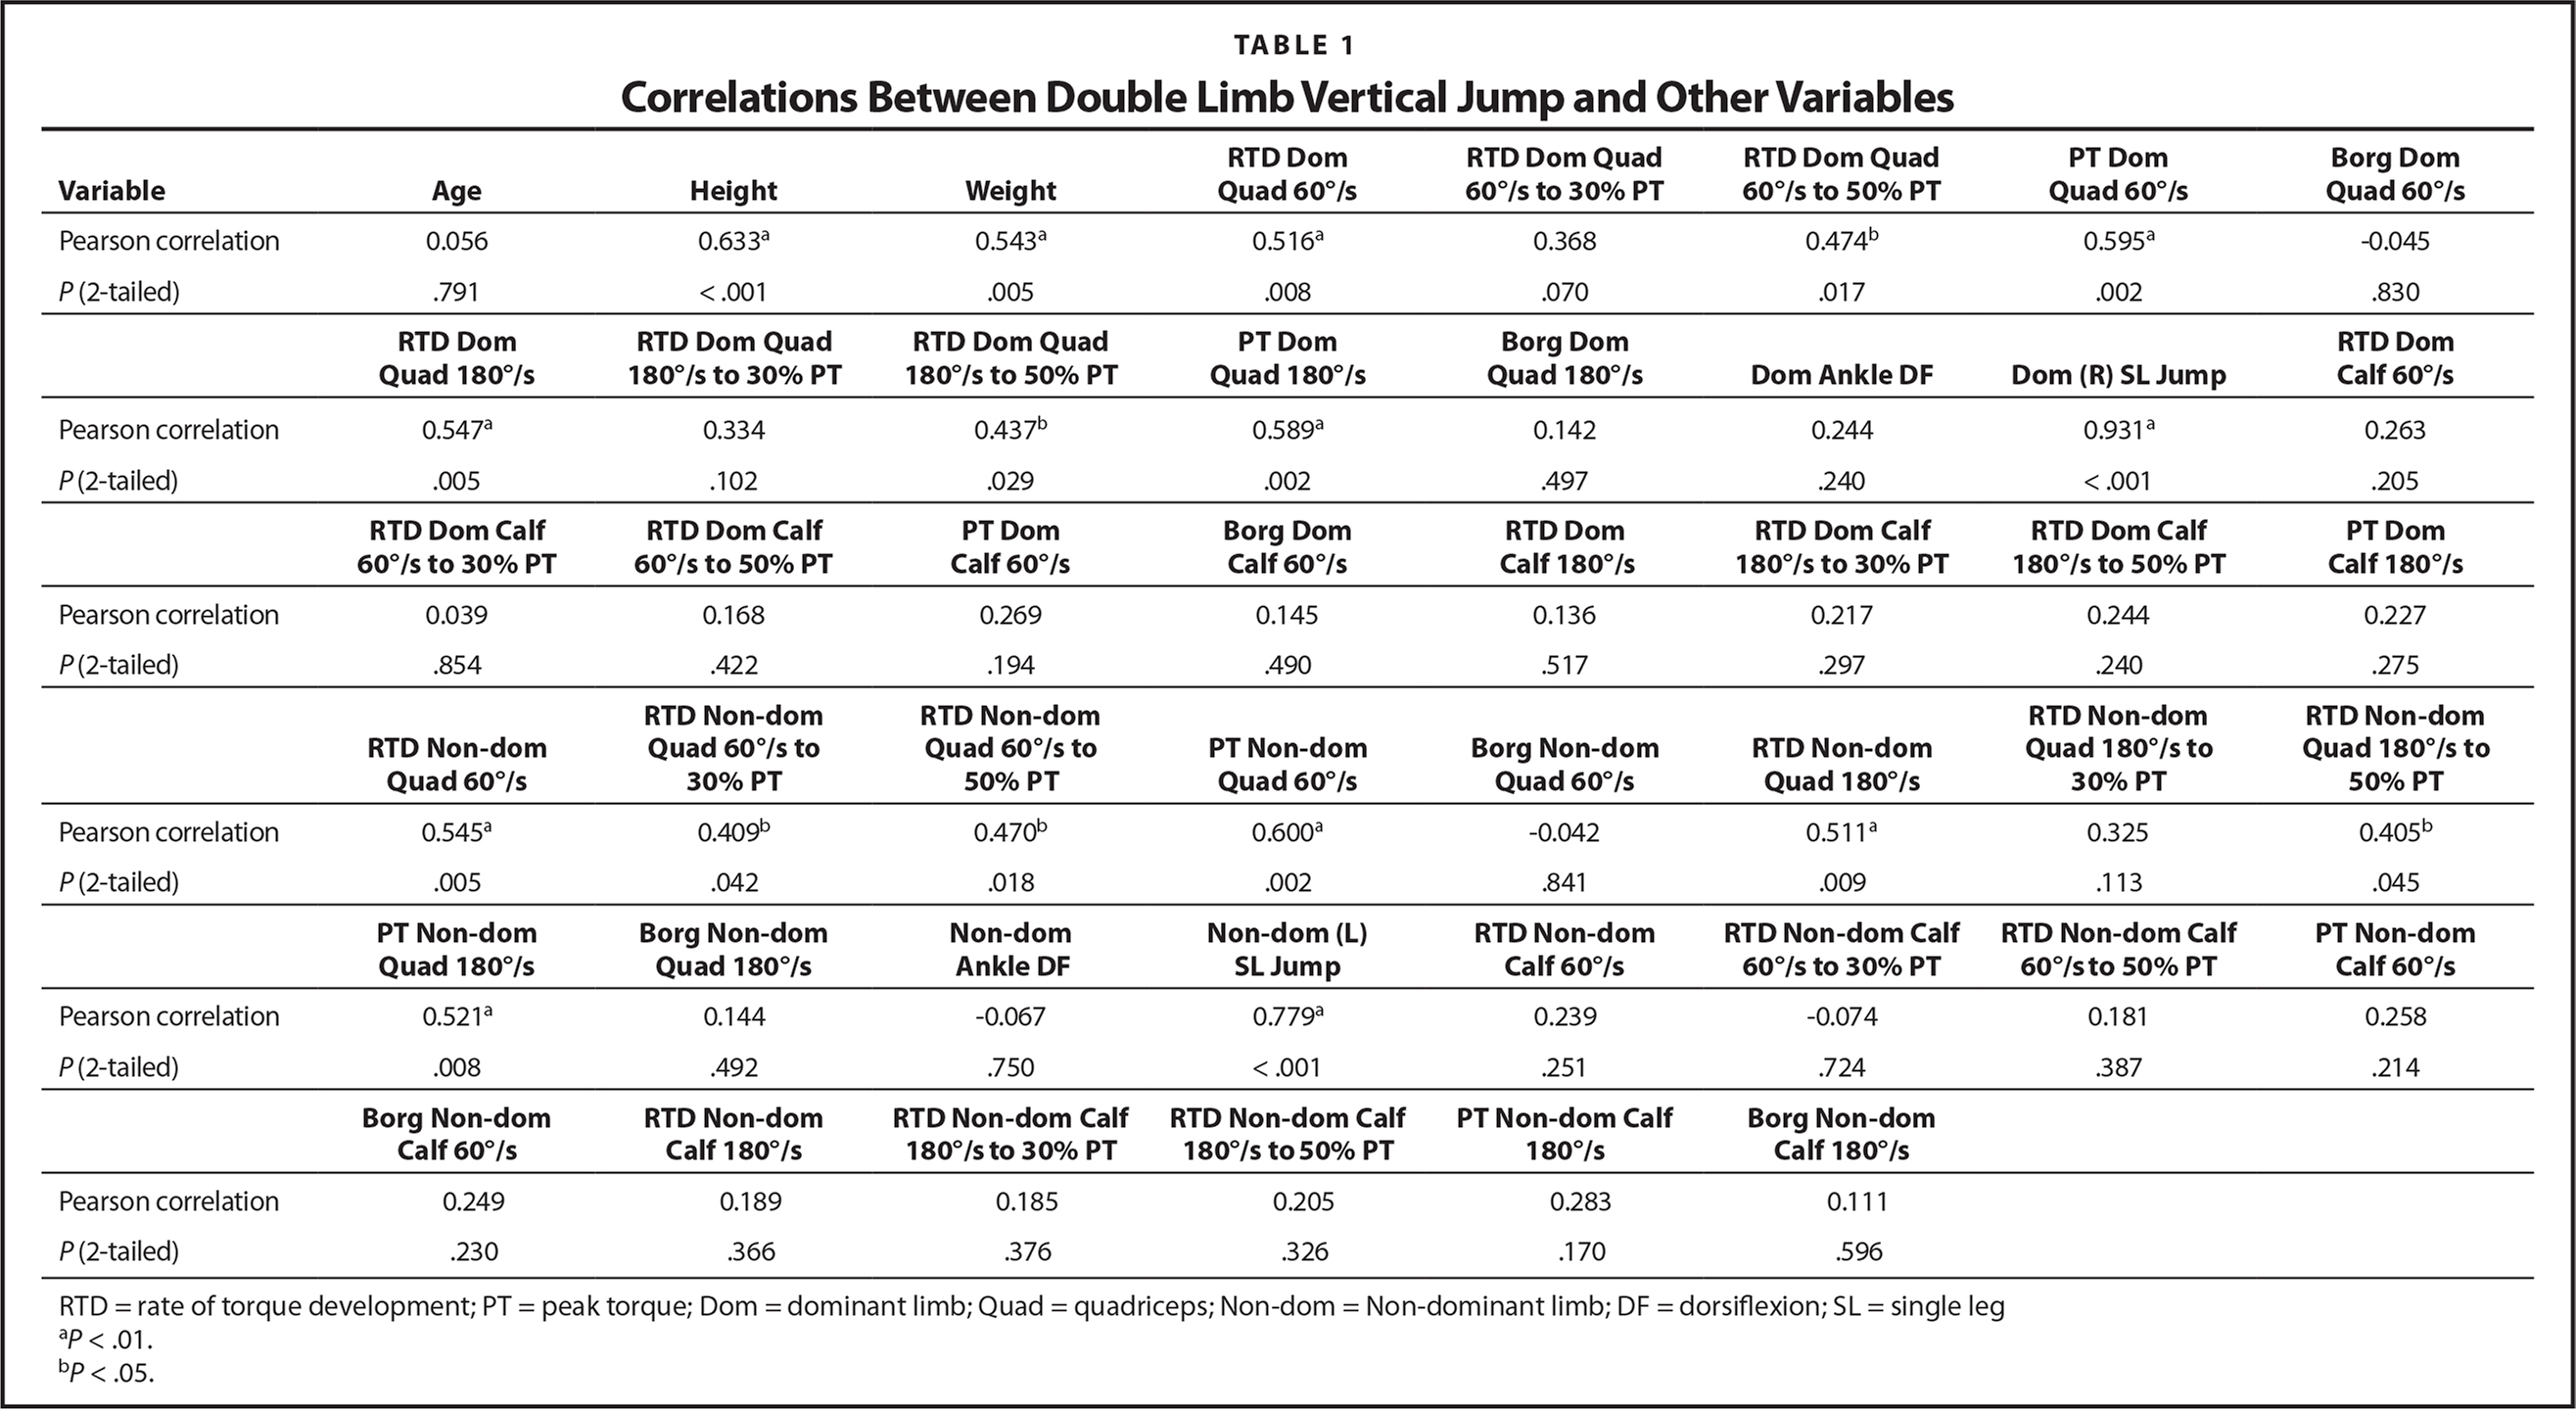 Correlations Between Double Limb Vertical Jump and Other Variables